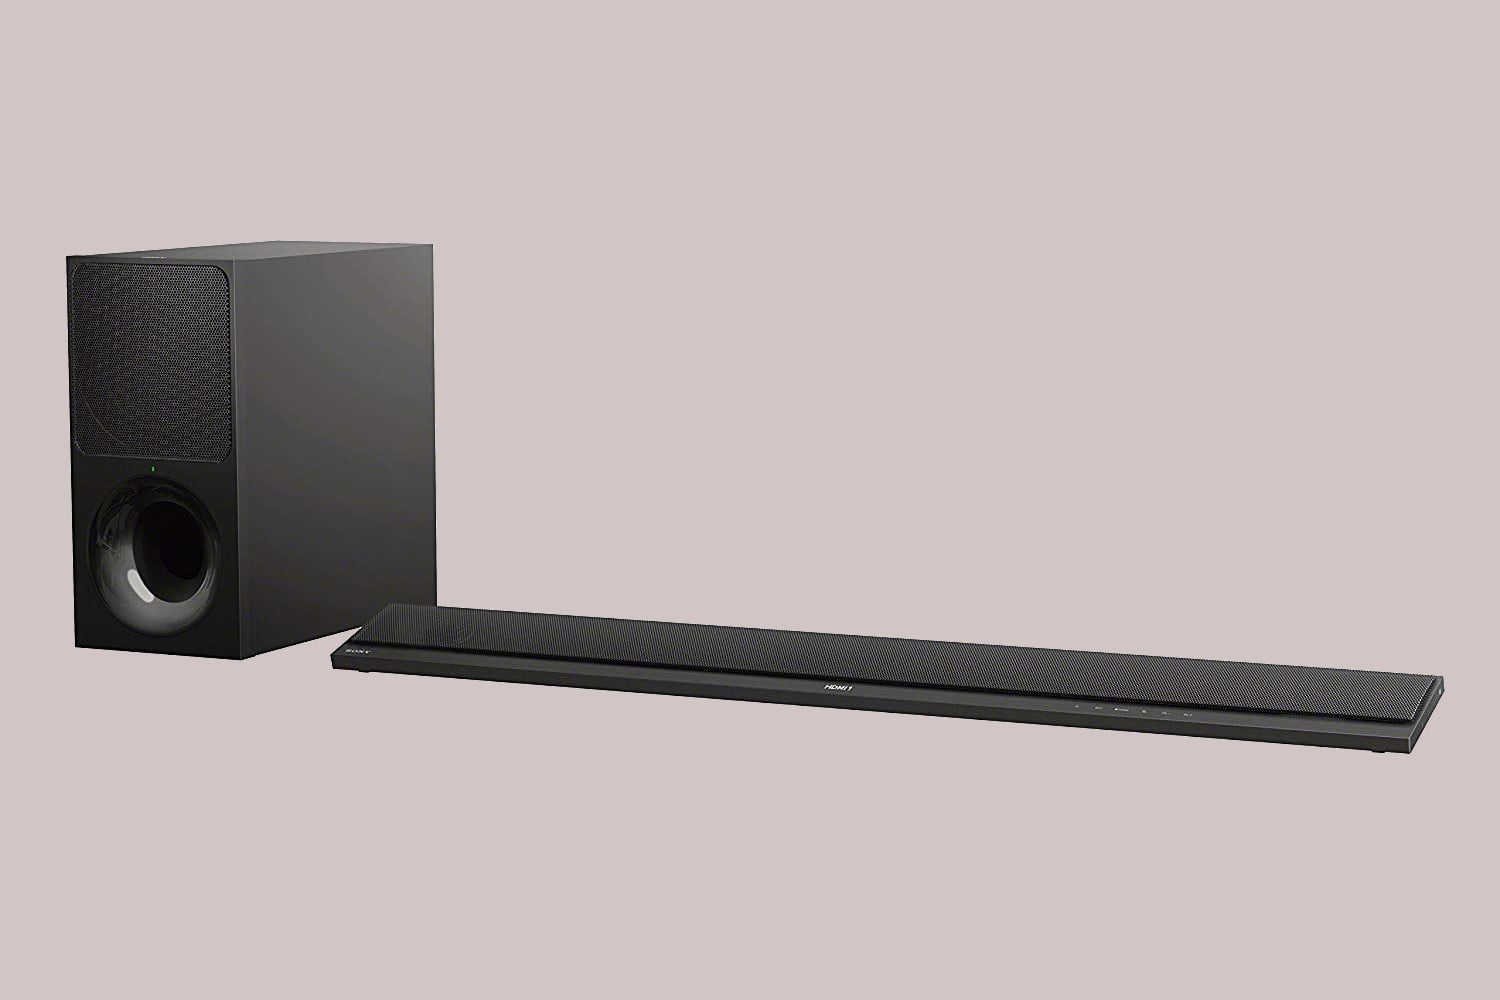 amazon drops prices on bose sony samsung and yamaha sound bars for labor day ct800 bar wireless subwoofer ht 01  1